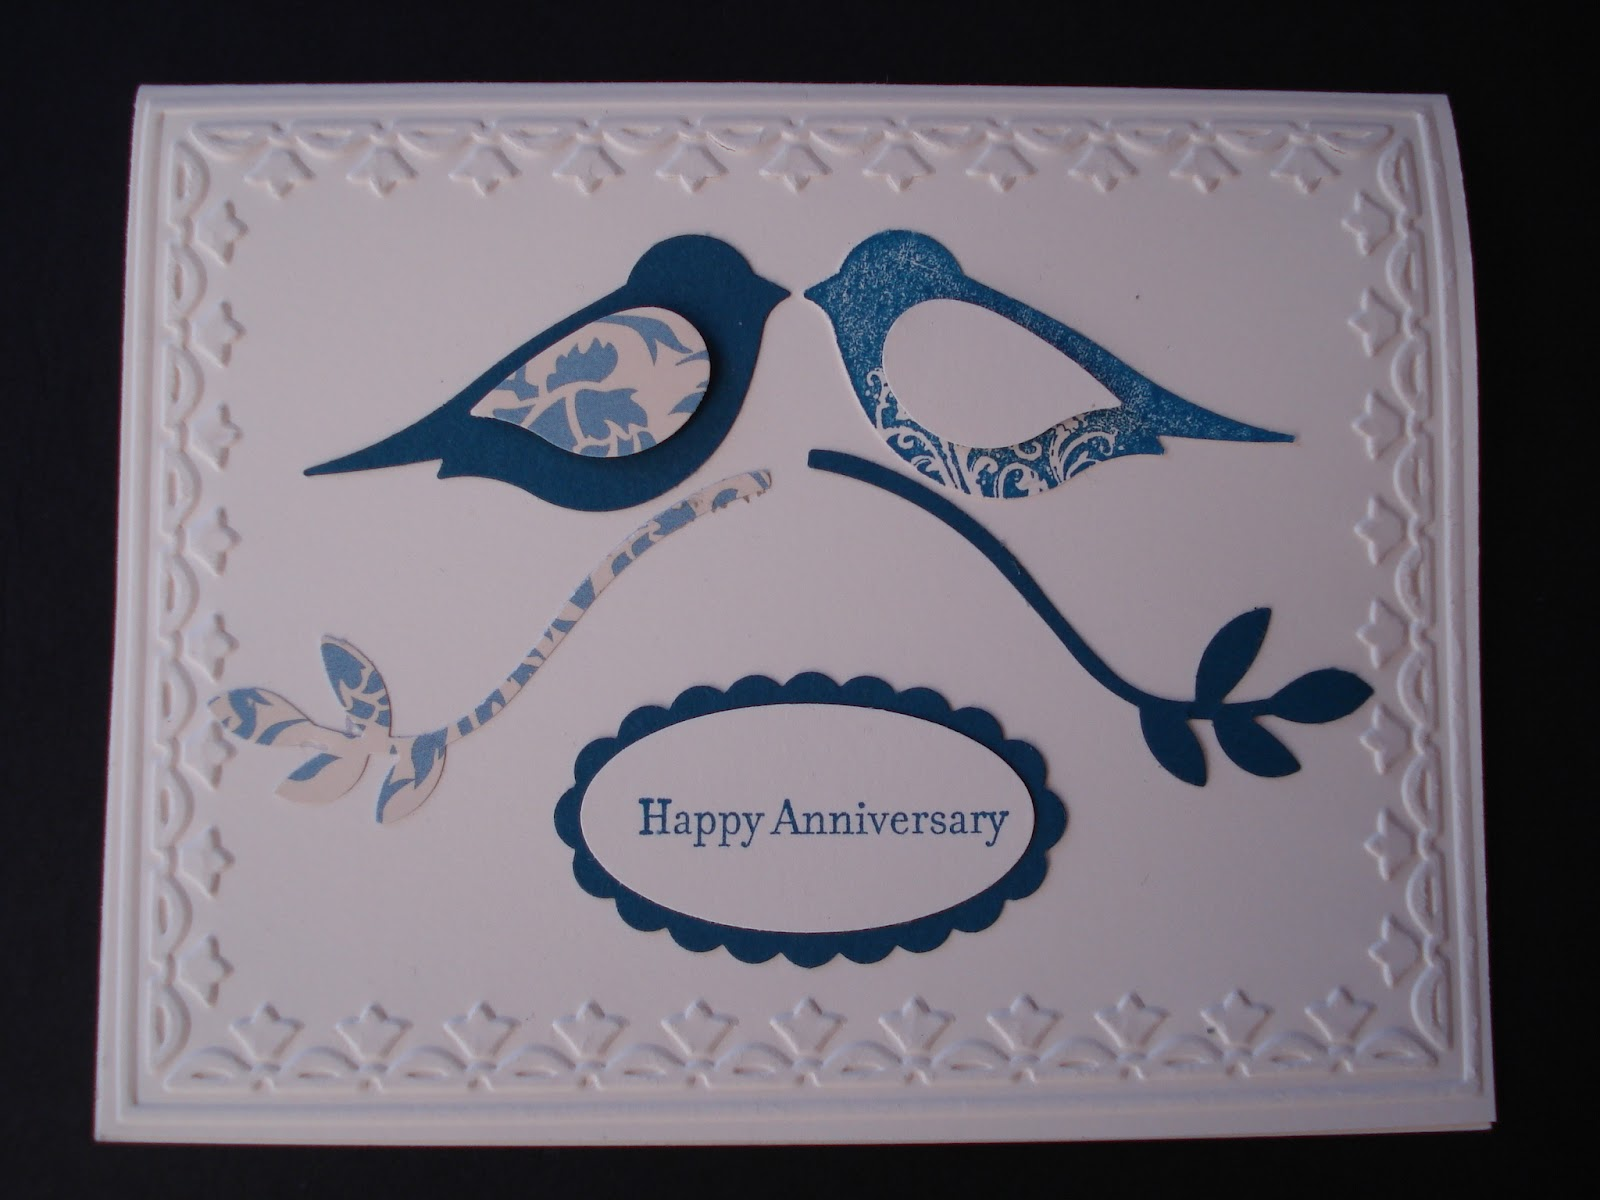 ... And Me For Our 40th Wedding Anniversary Last Month. We Also Received  Lots Of Beautiful Cards Bought In Shops, And They Too Will Be Kept And  Treasured.